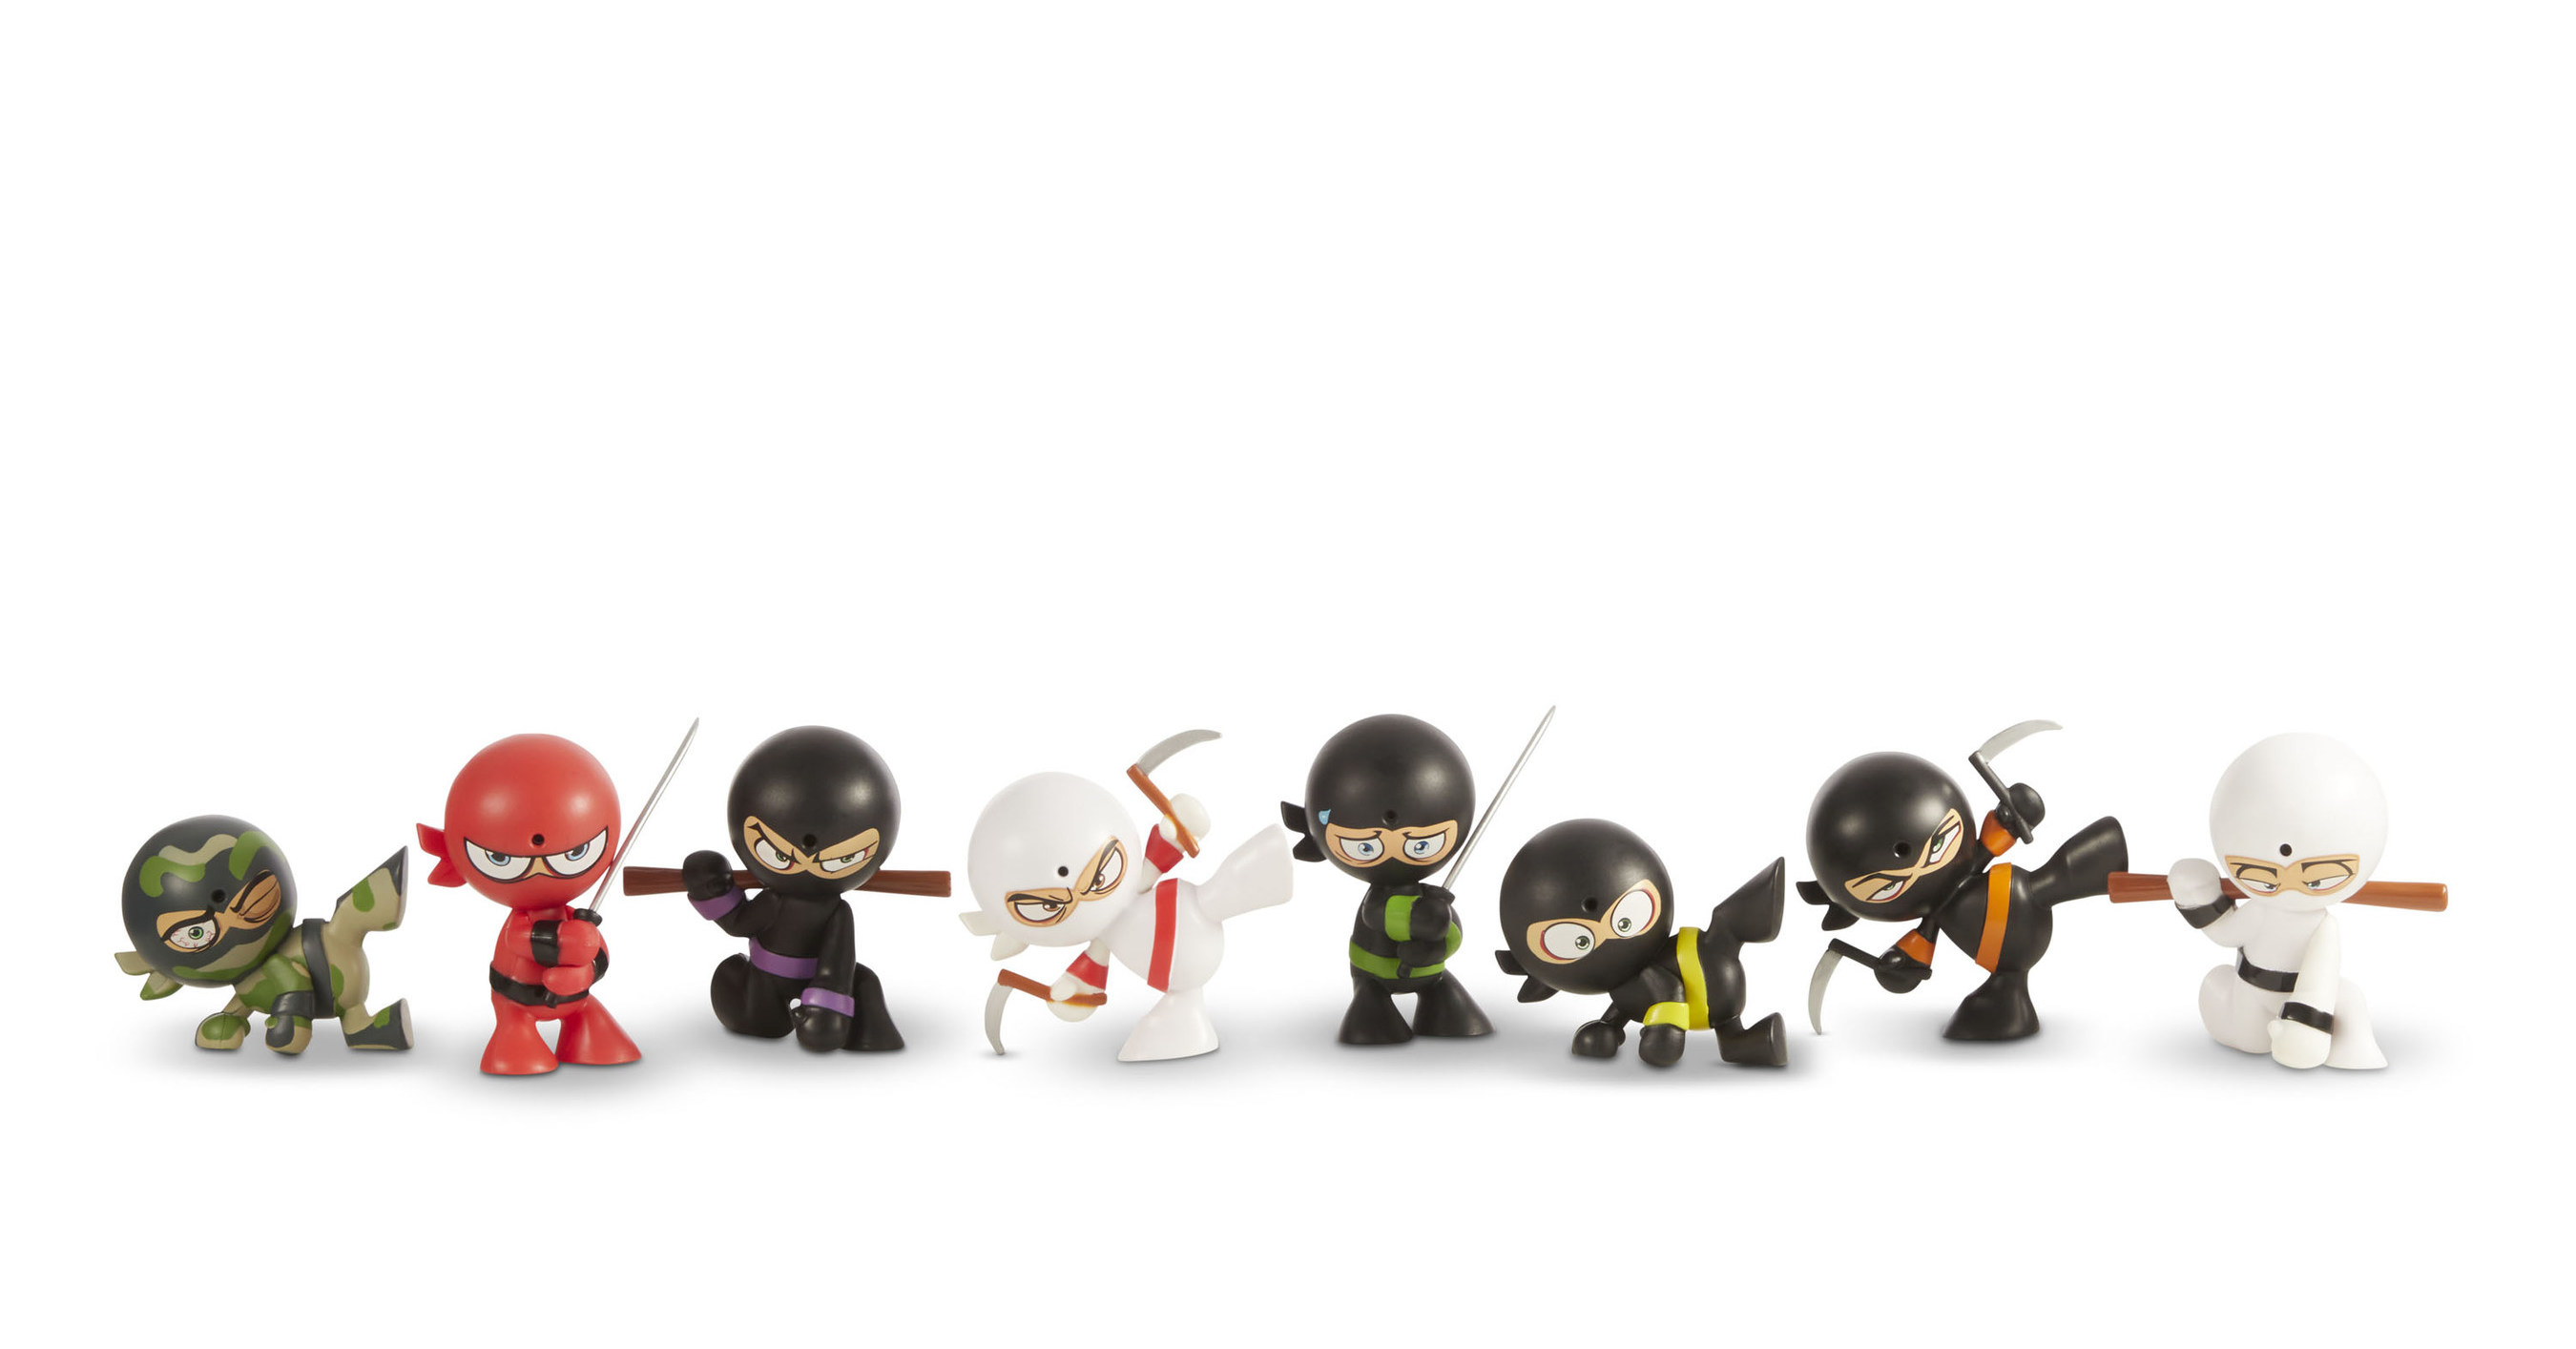 Fart Ninjas 'Gross Out' Action Figure Line Launches at Retail in Time to be the Next Hot Holiday Toy